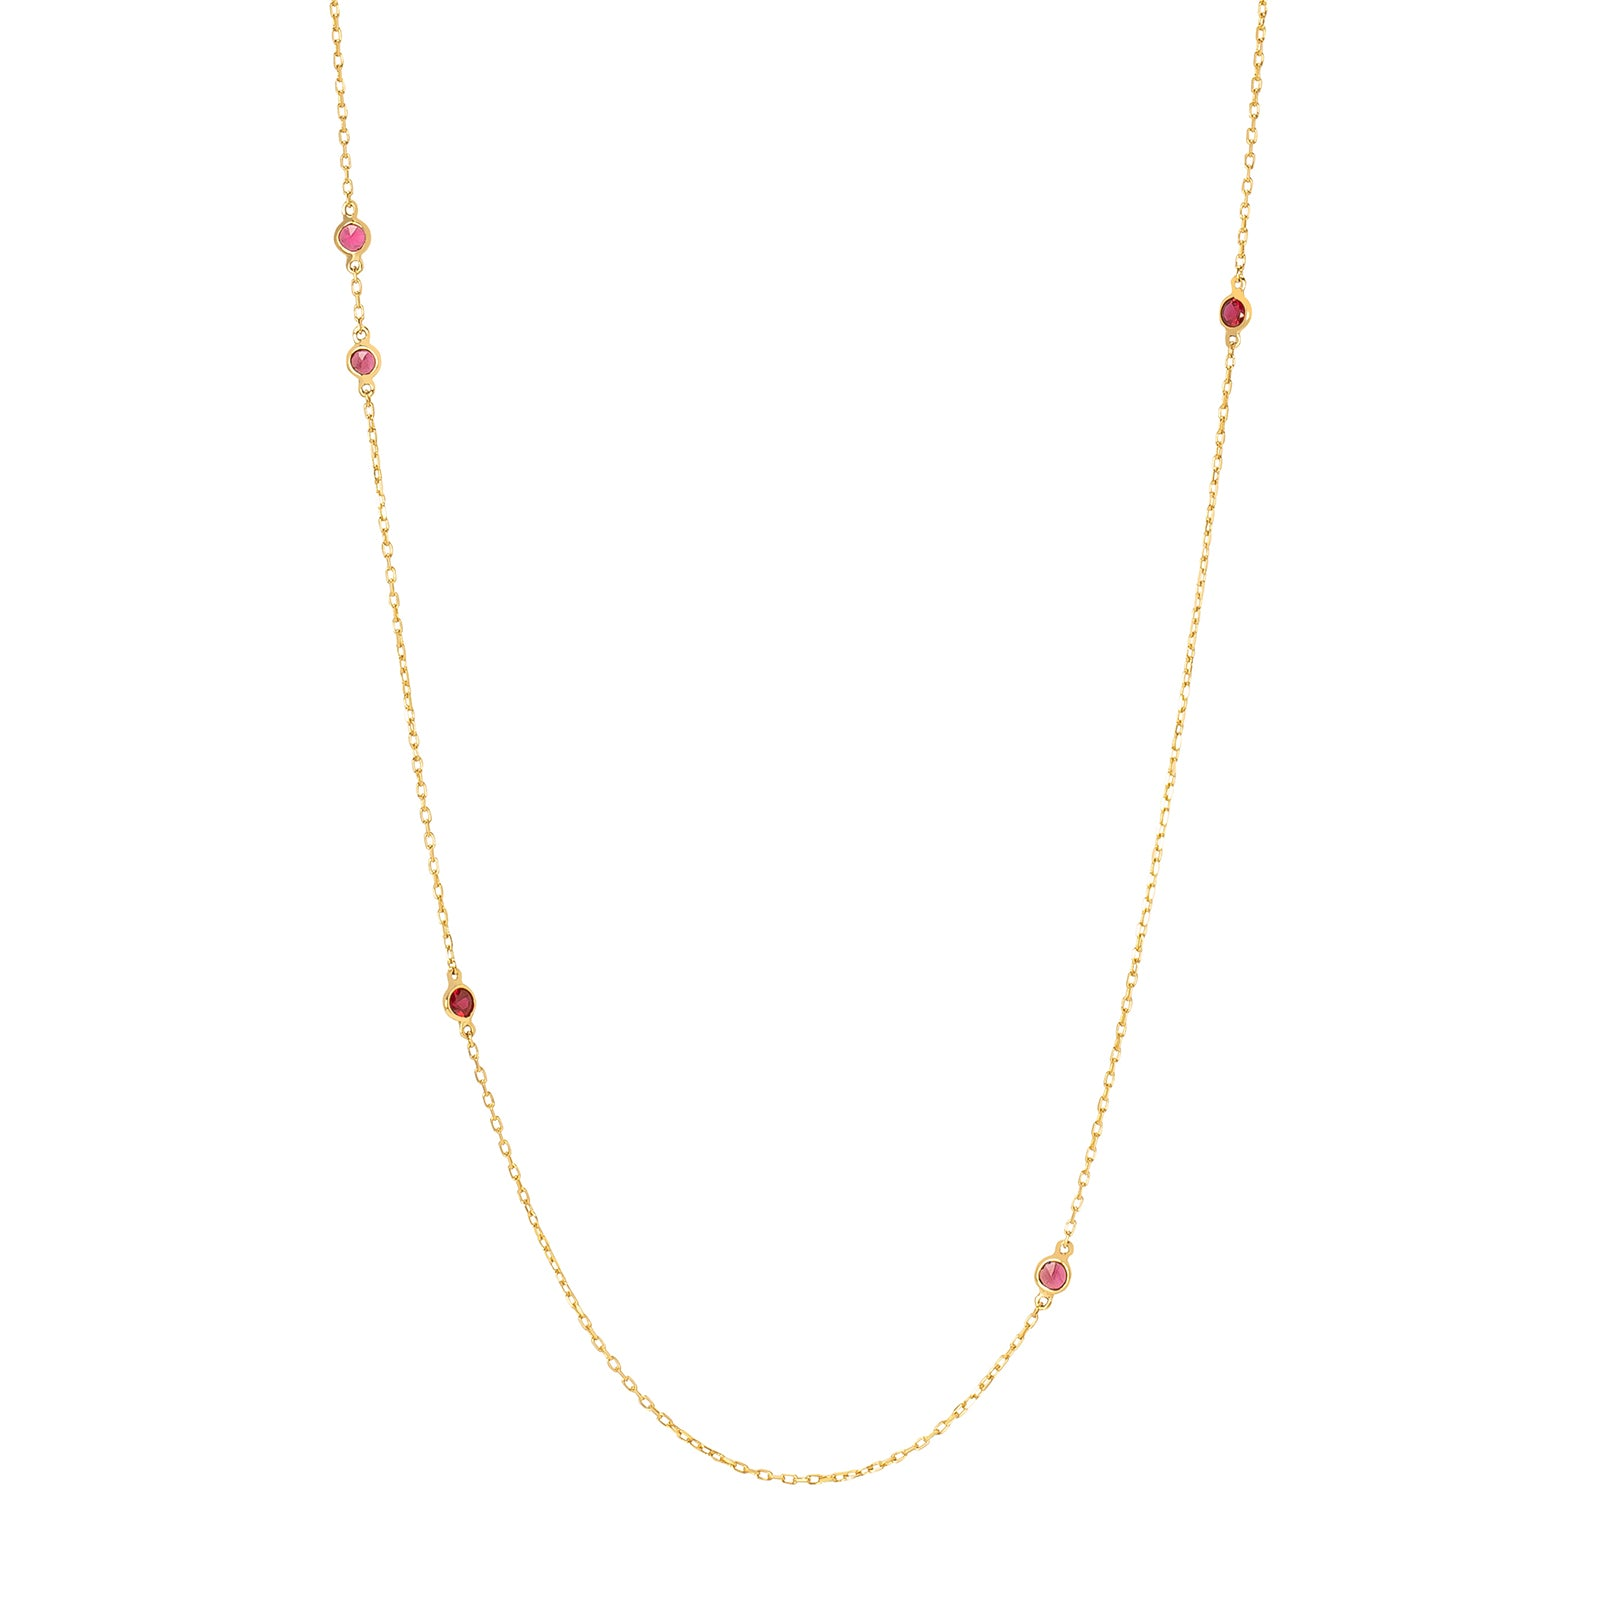 YI Collection Ruby Dot Necklace - Necklaces - Broken English Jewelry